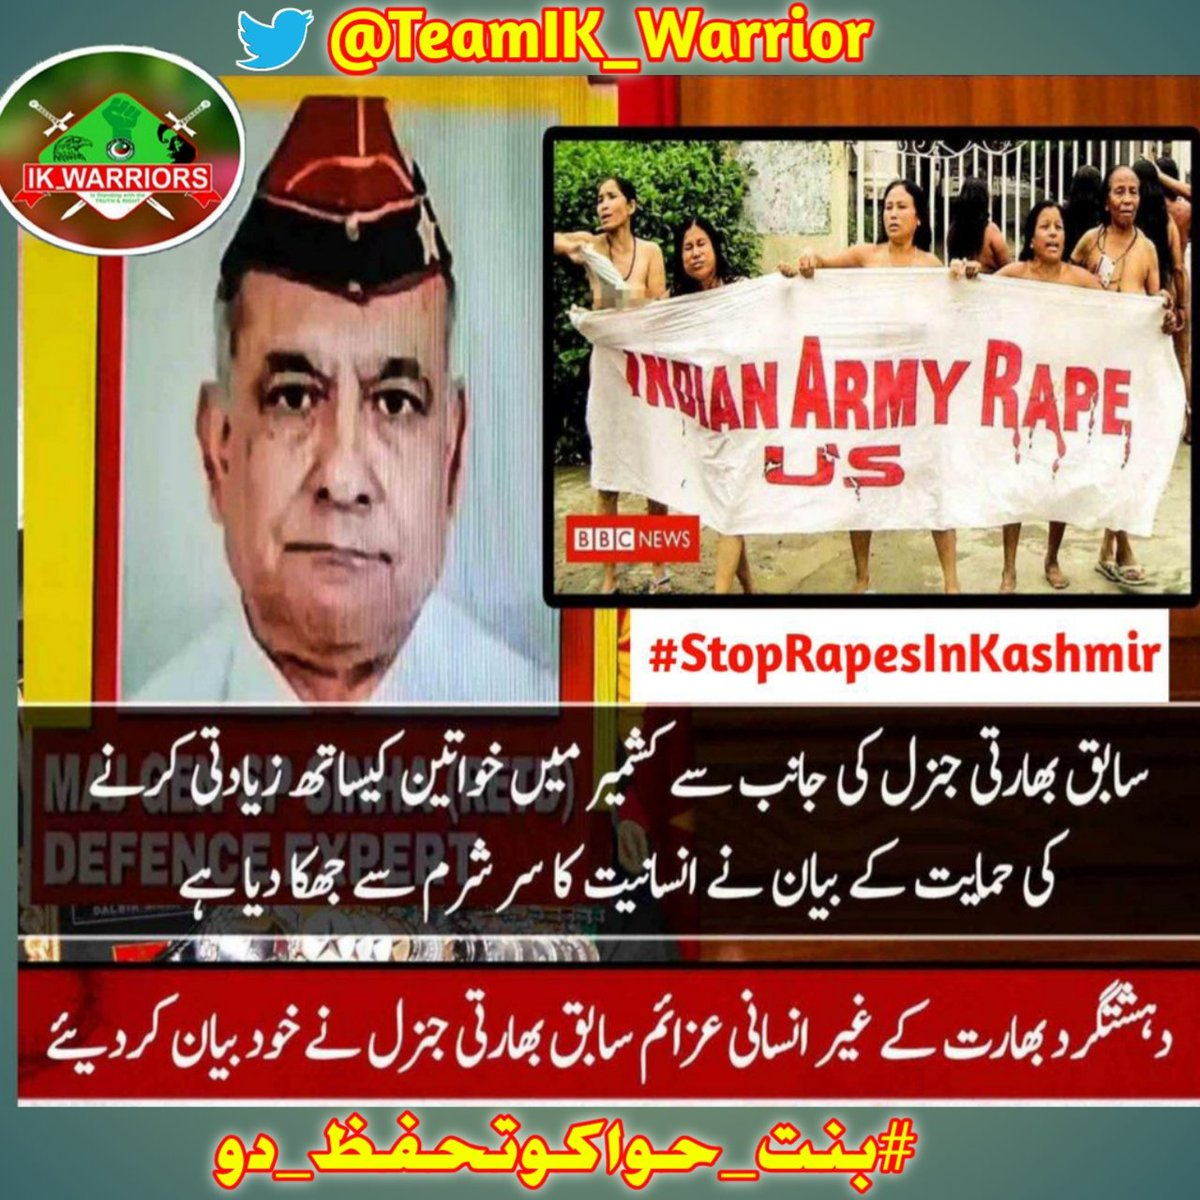 #StopRapesInKashmir Indian army only have training of rap and torture. No ethics no fighting spirit #بنت_حواکوتحفظ_دو